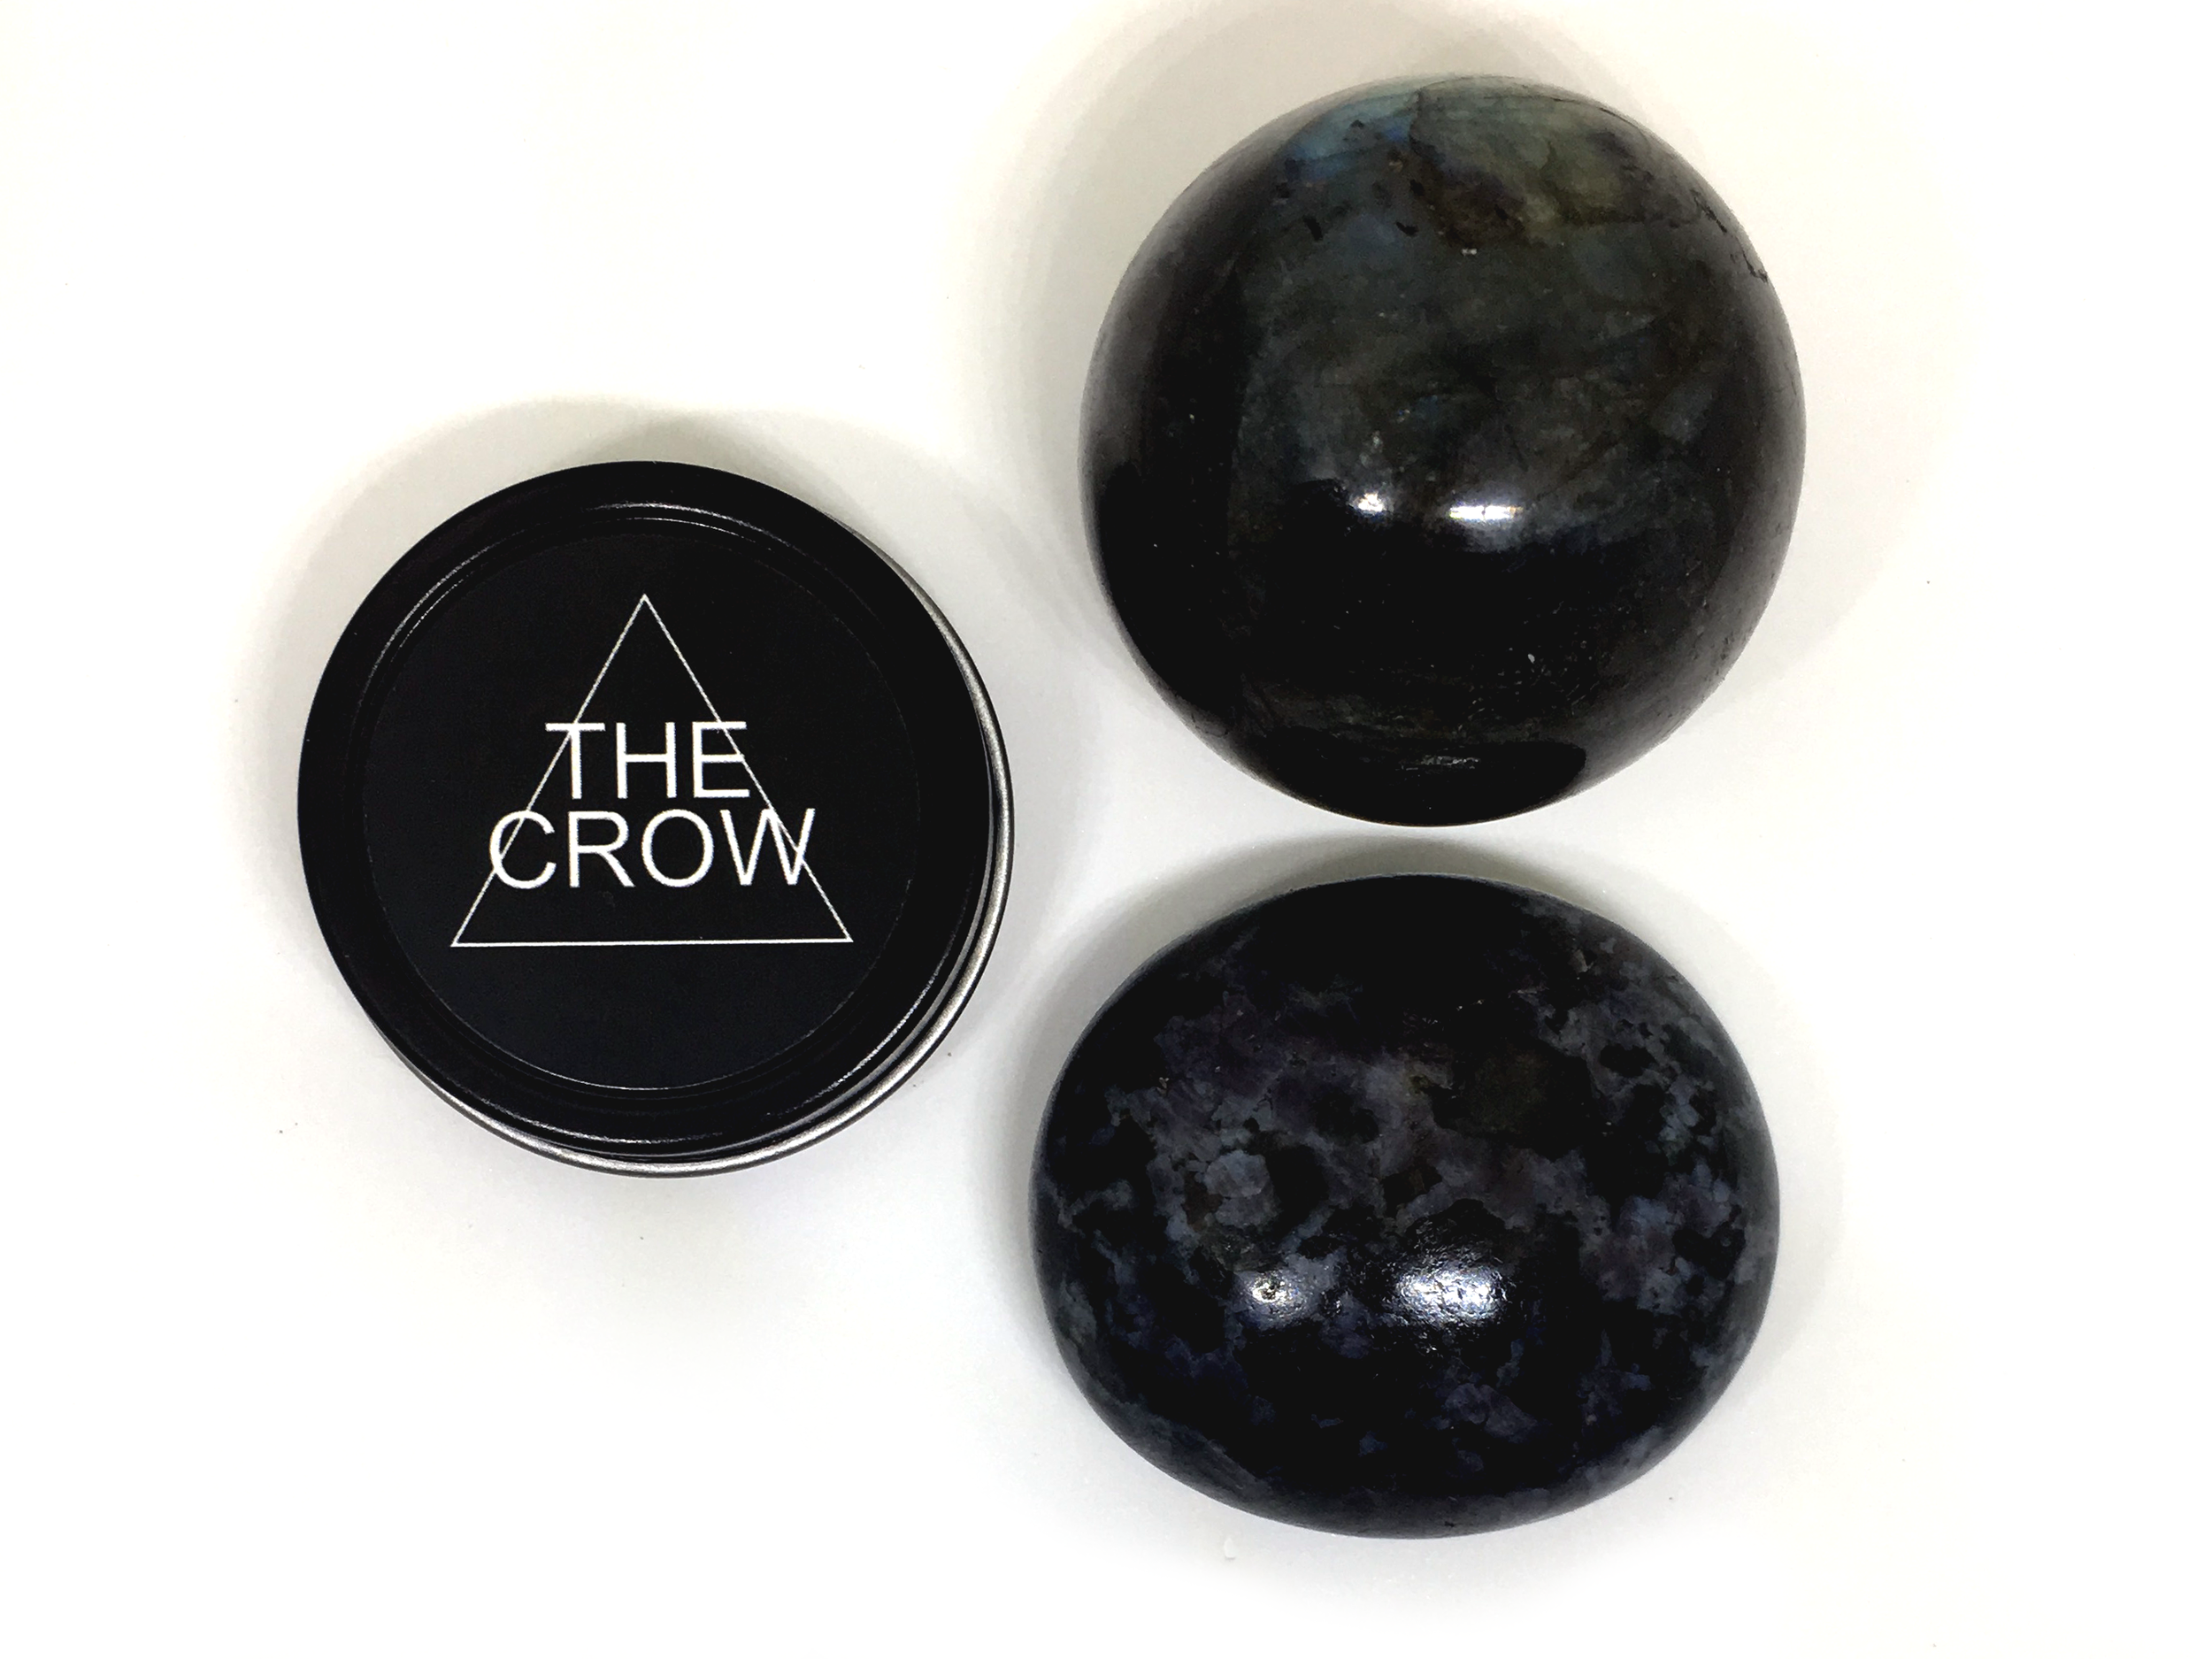 the crow anointing balm